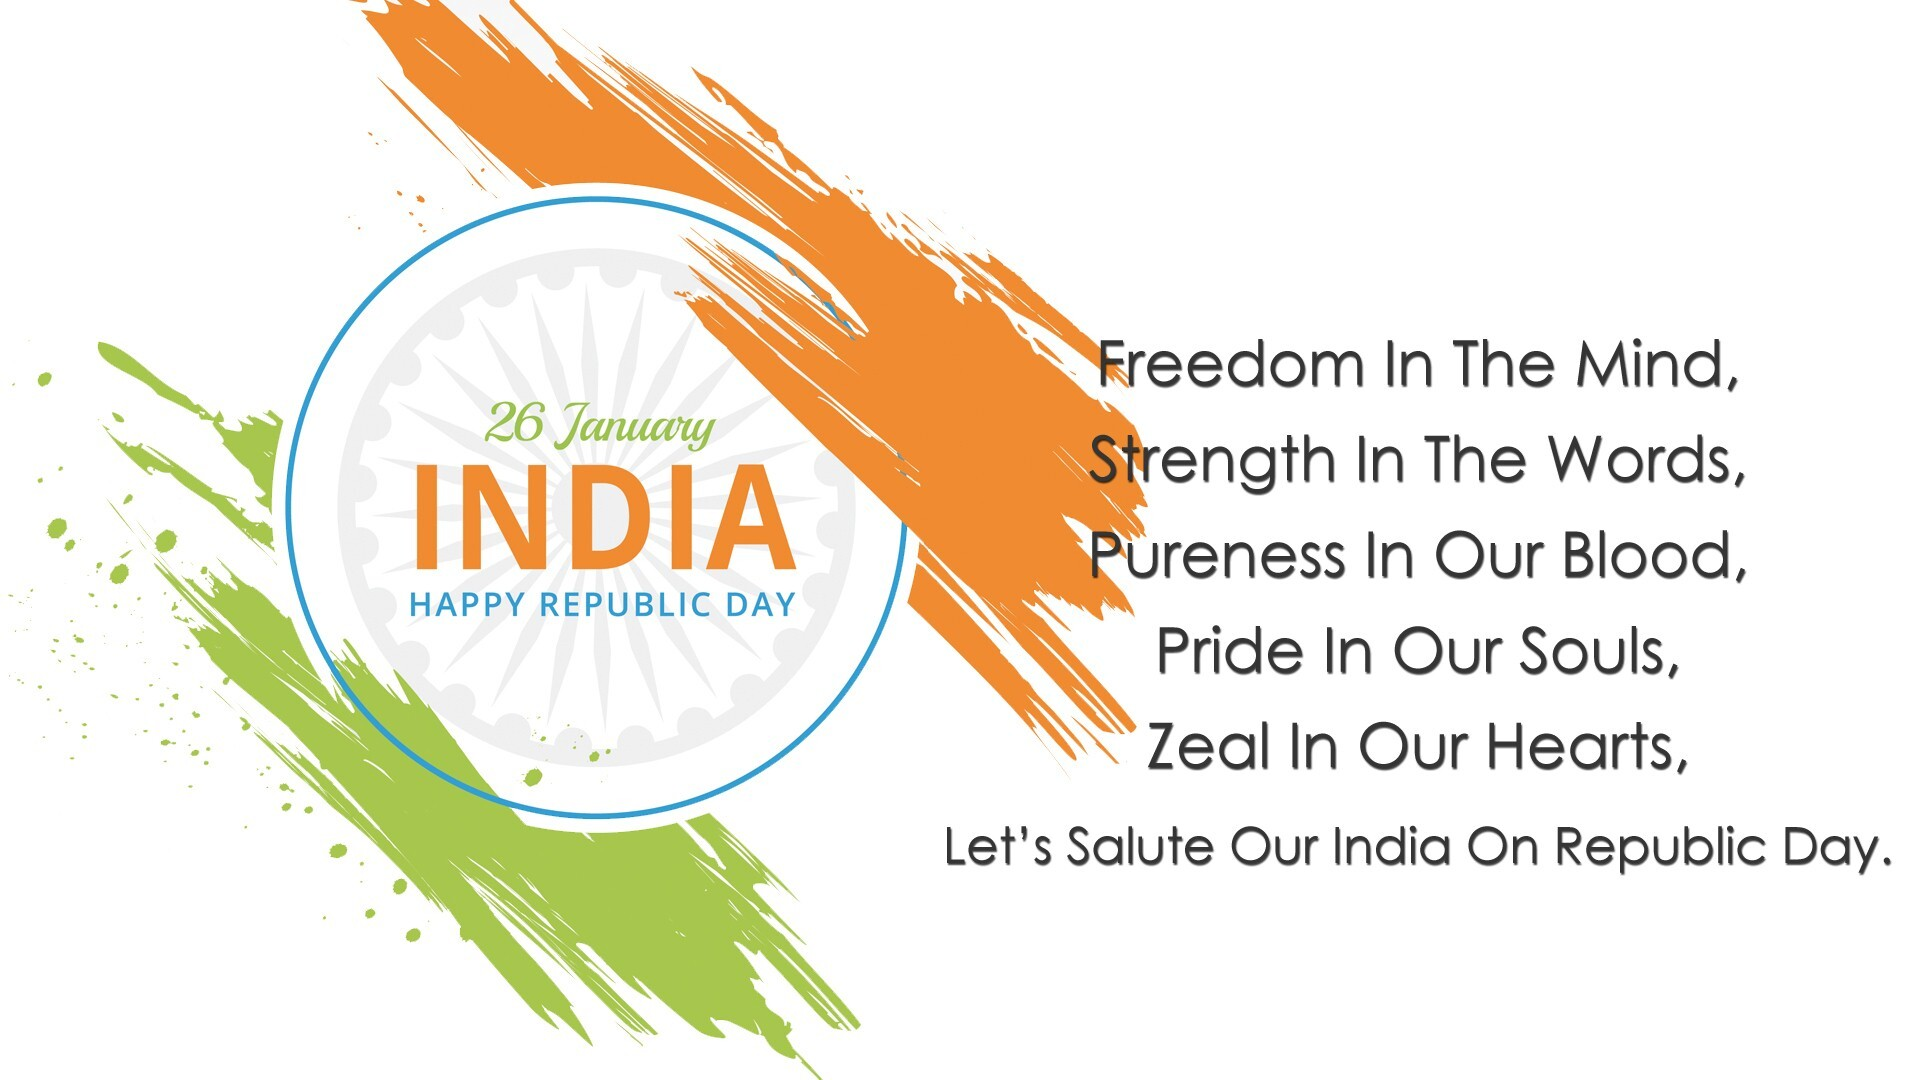 New Wallpaper Of India Republic Day Greetings Hd Wallpapers